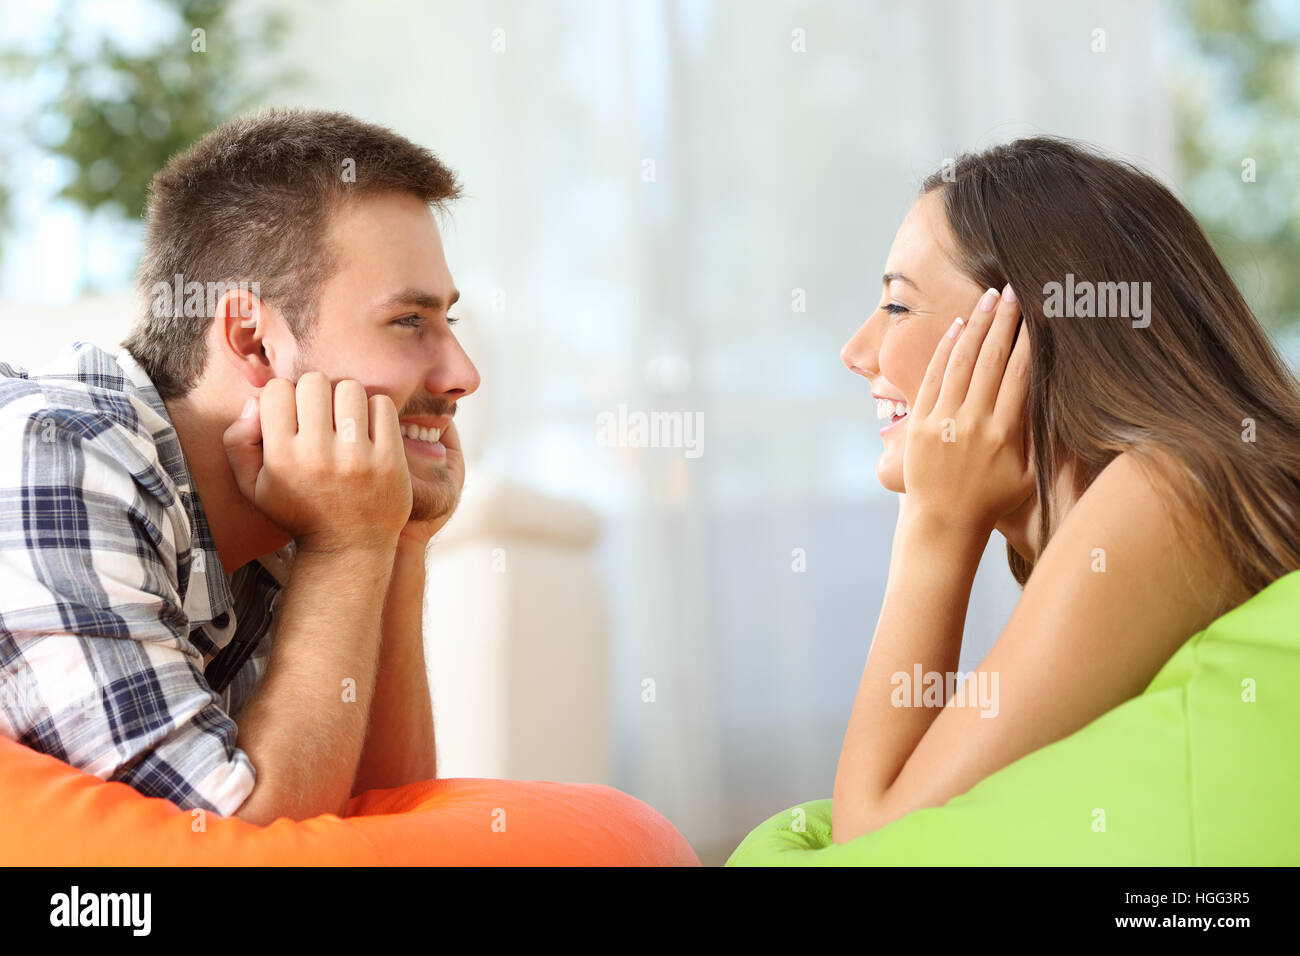 Two friends dating